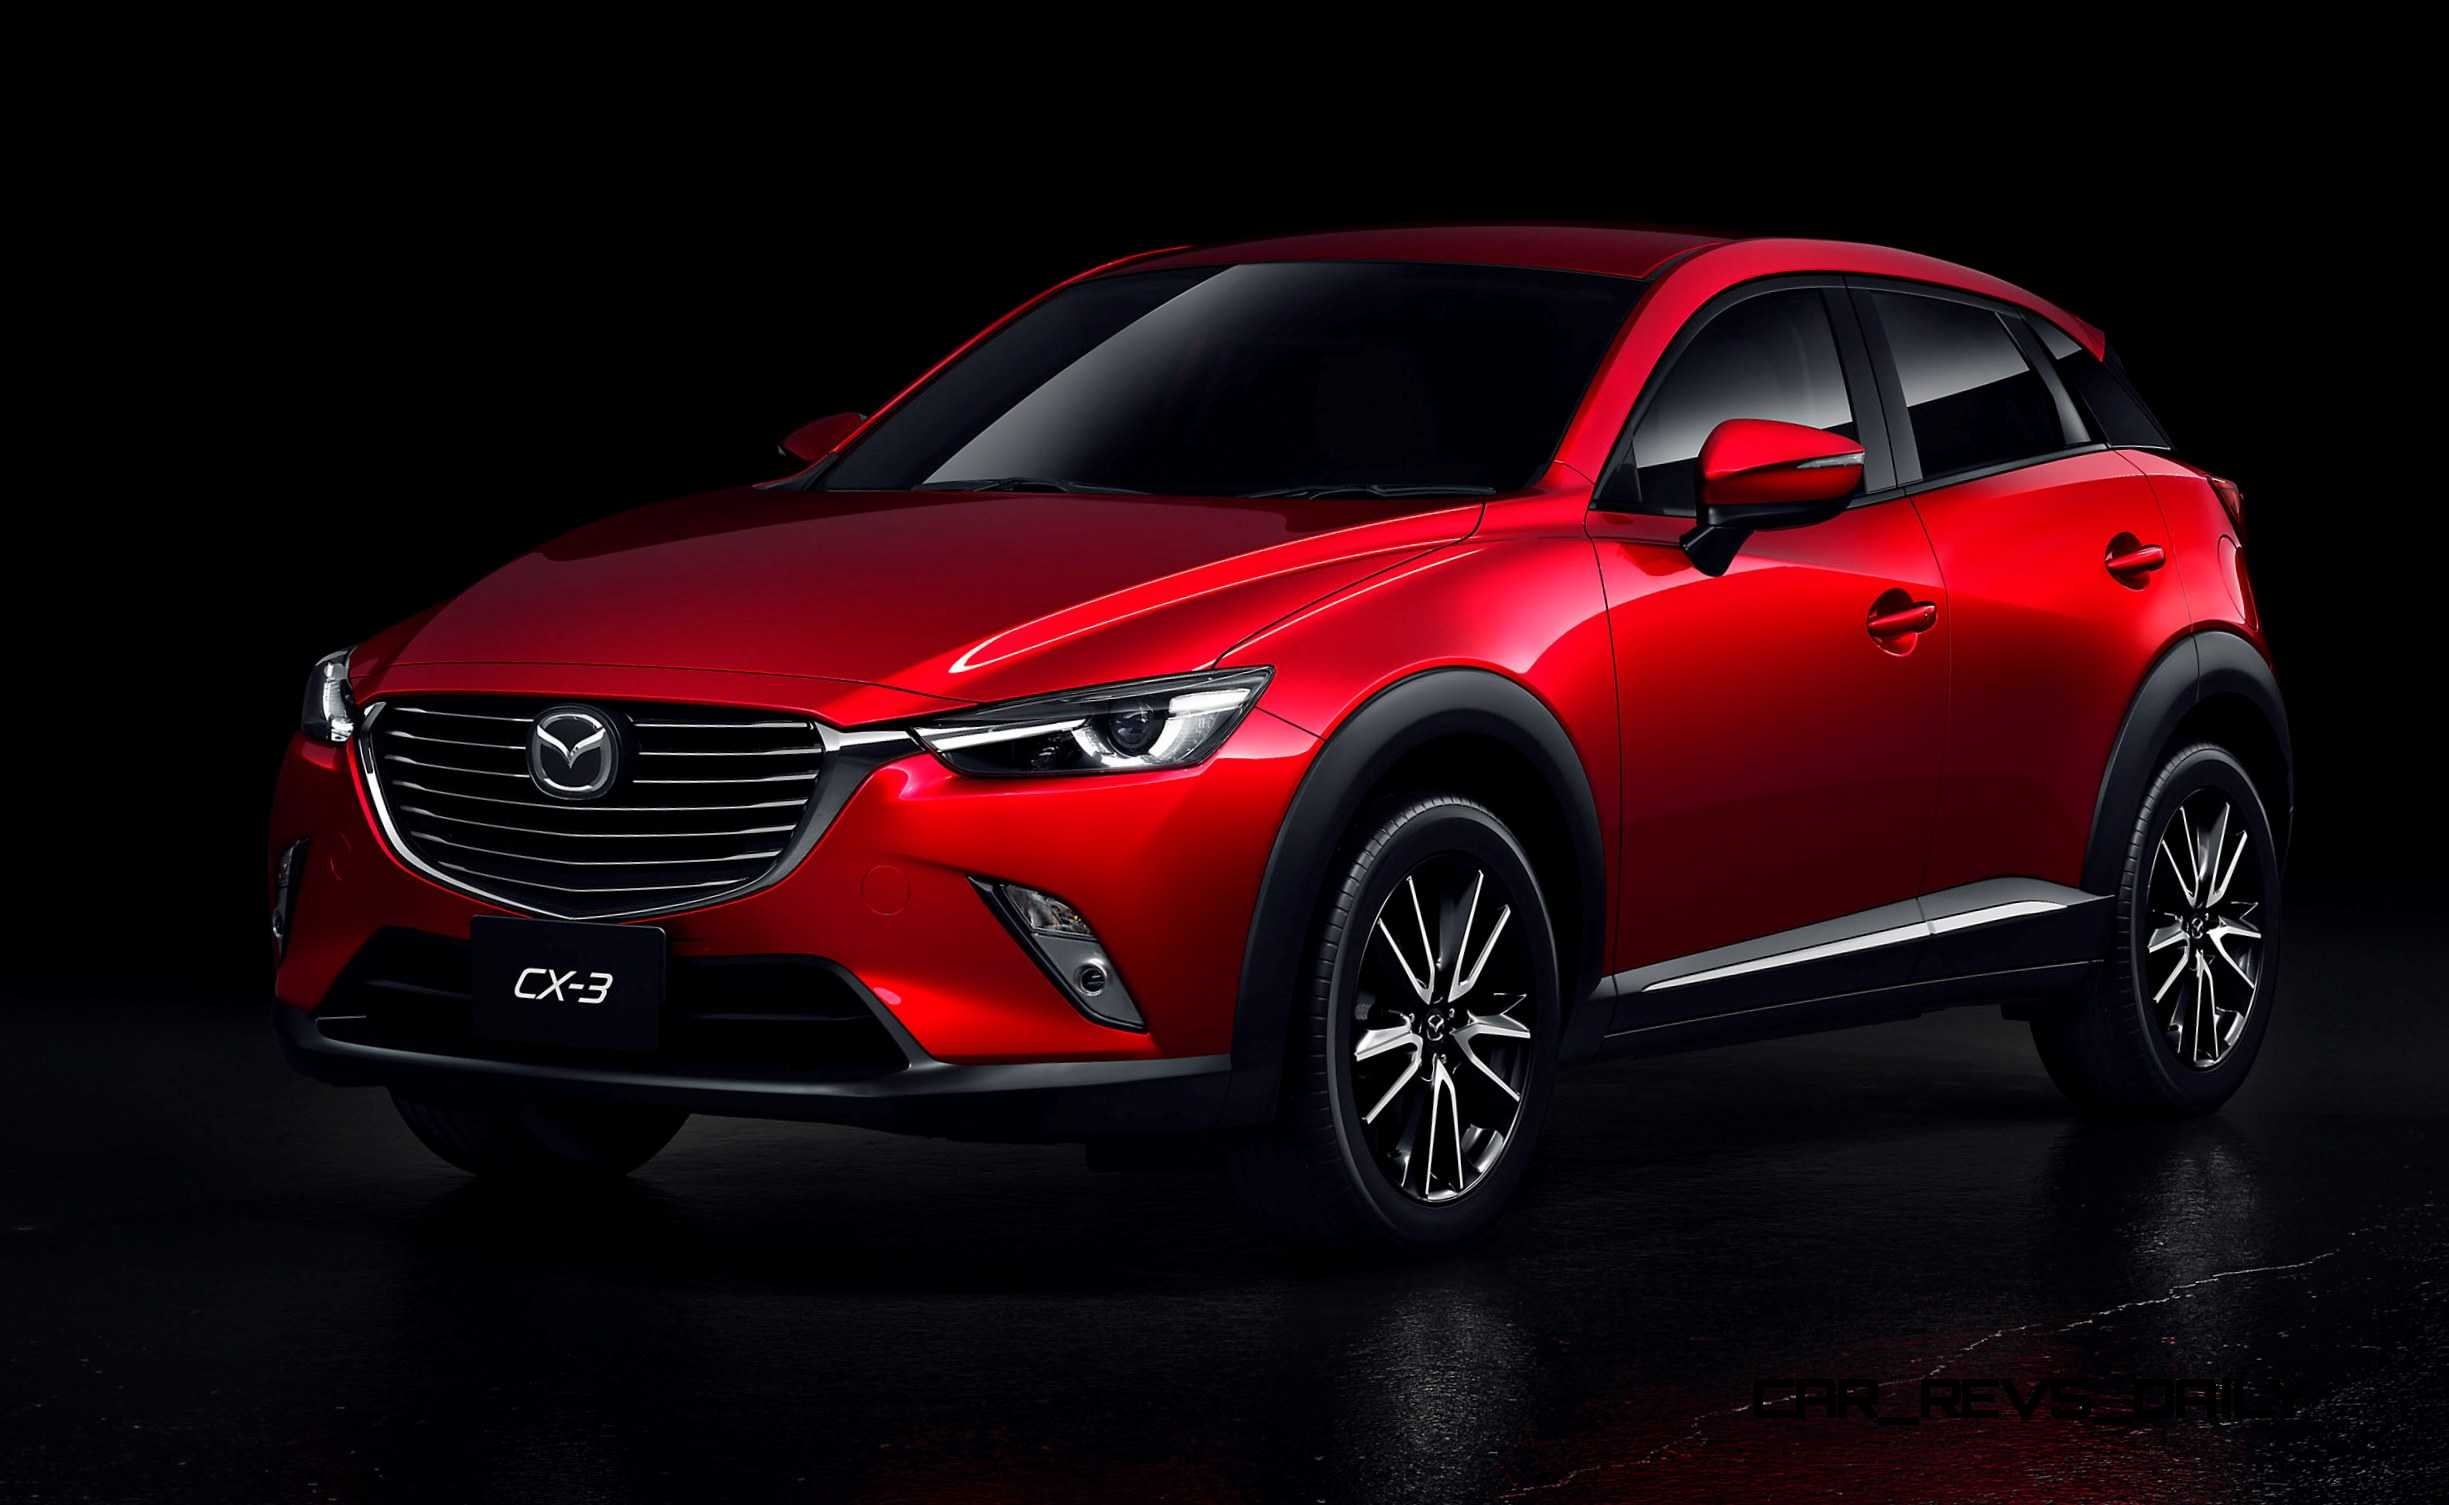 2016 mazda cx 3. Black Bedroom Furniture Sets. Home Design Ideas